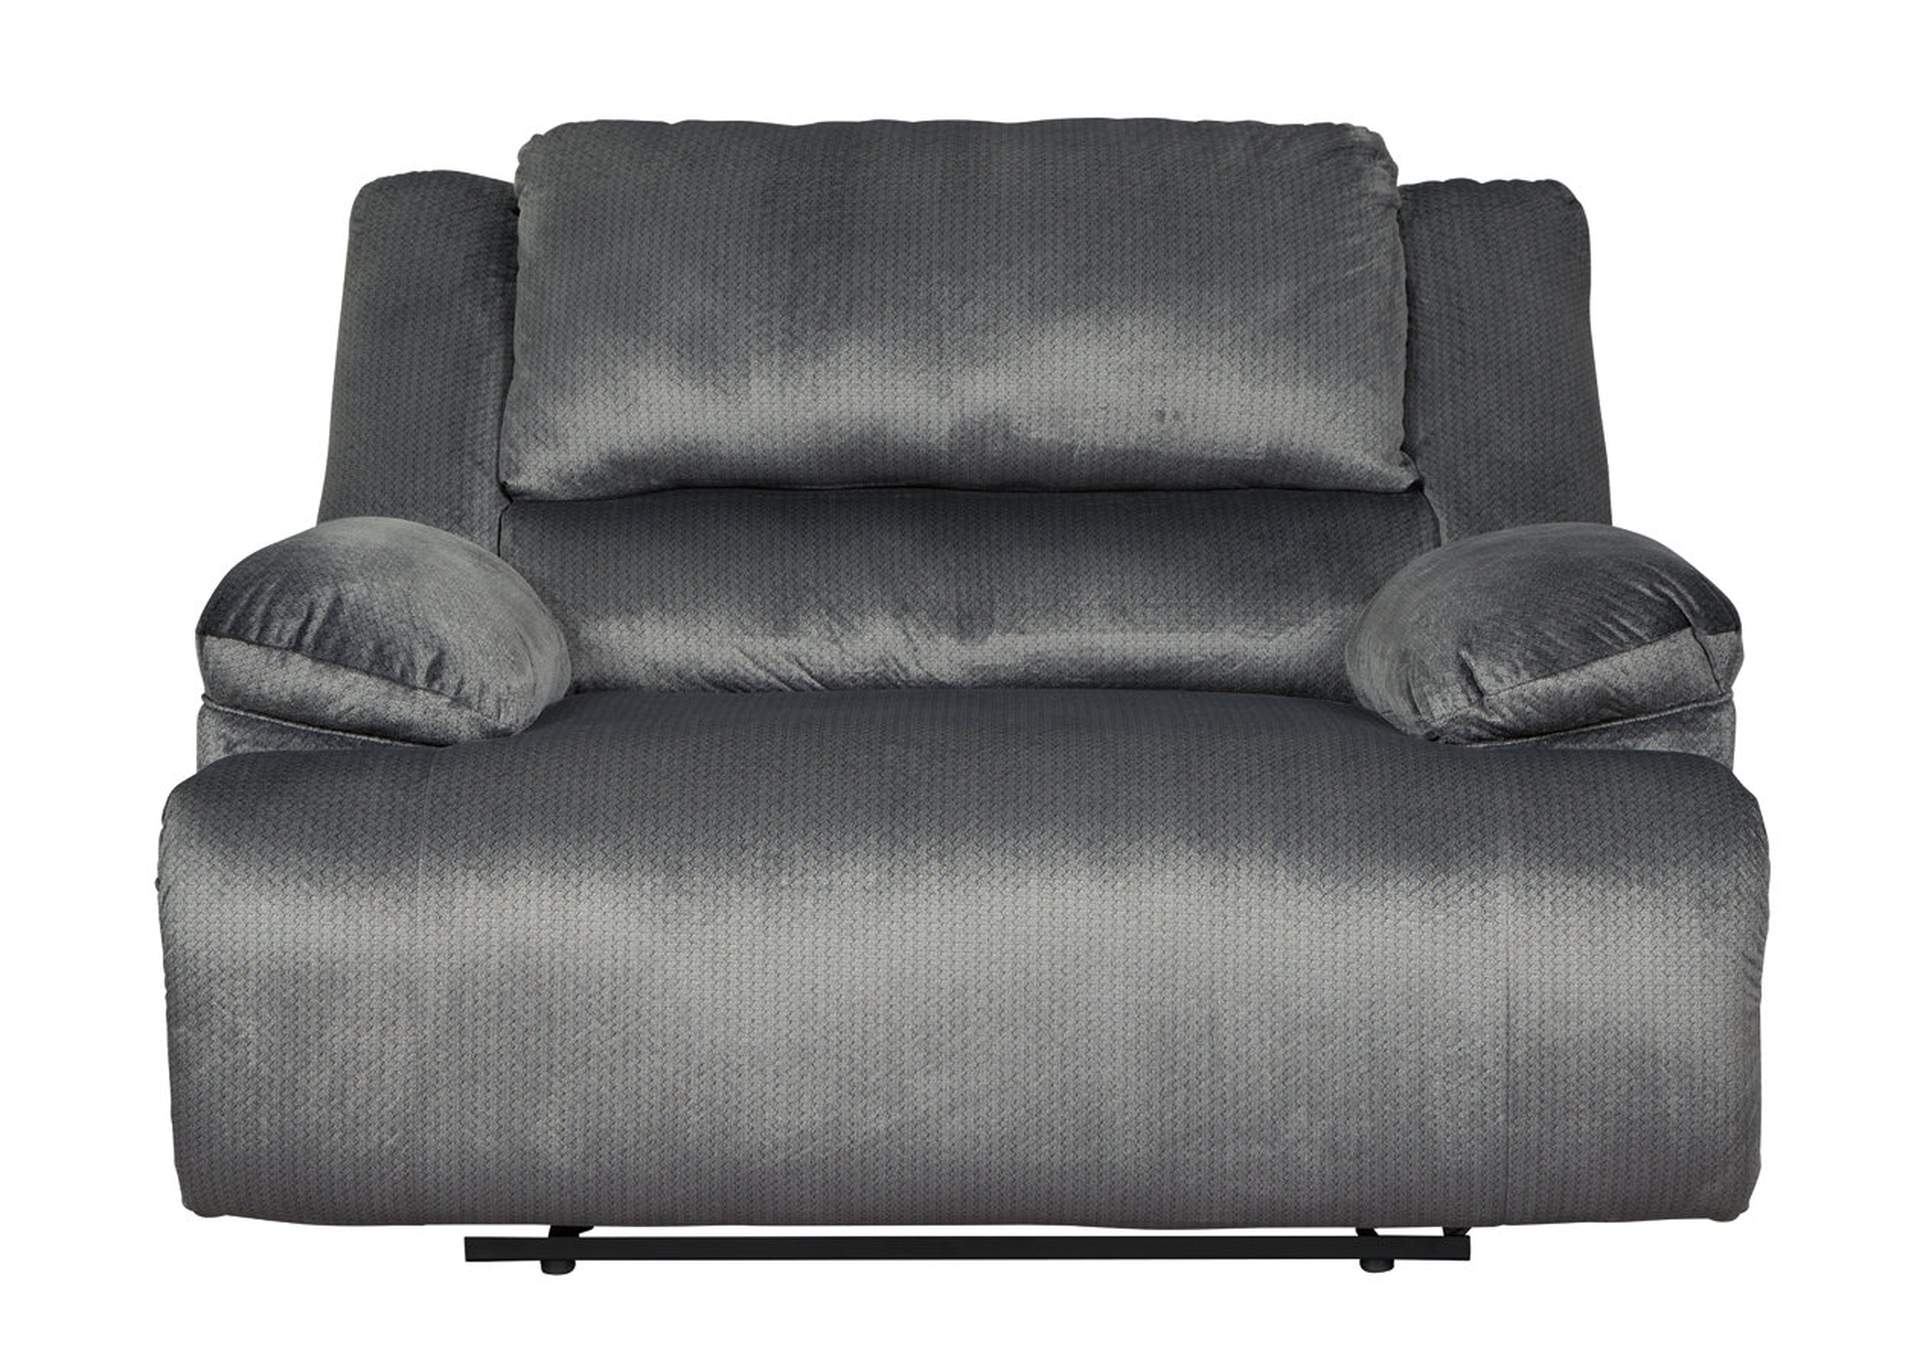 Clonmel Oversized Recliner,Signature Design By Ashley